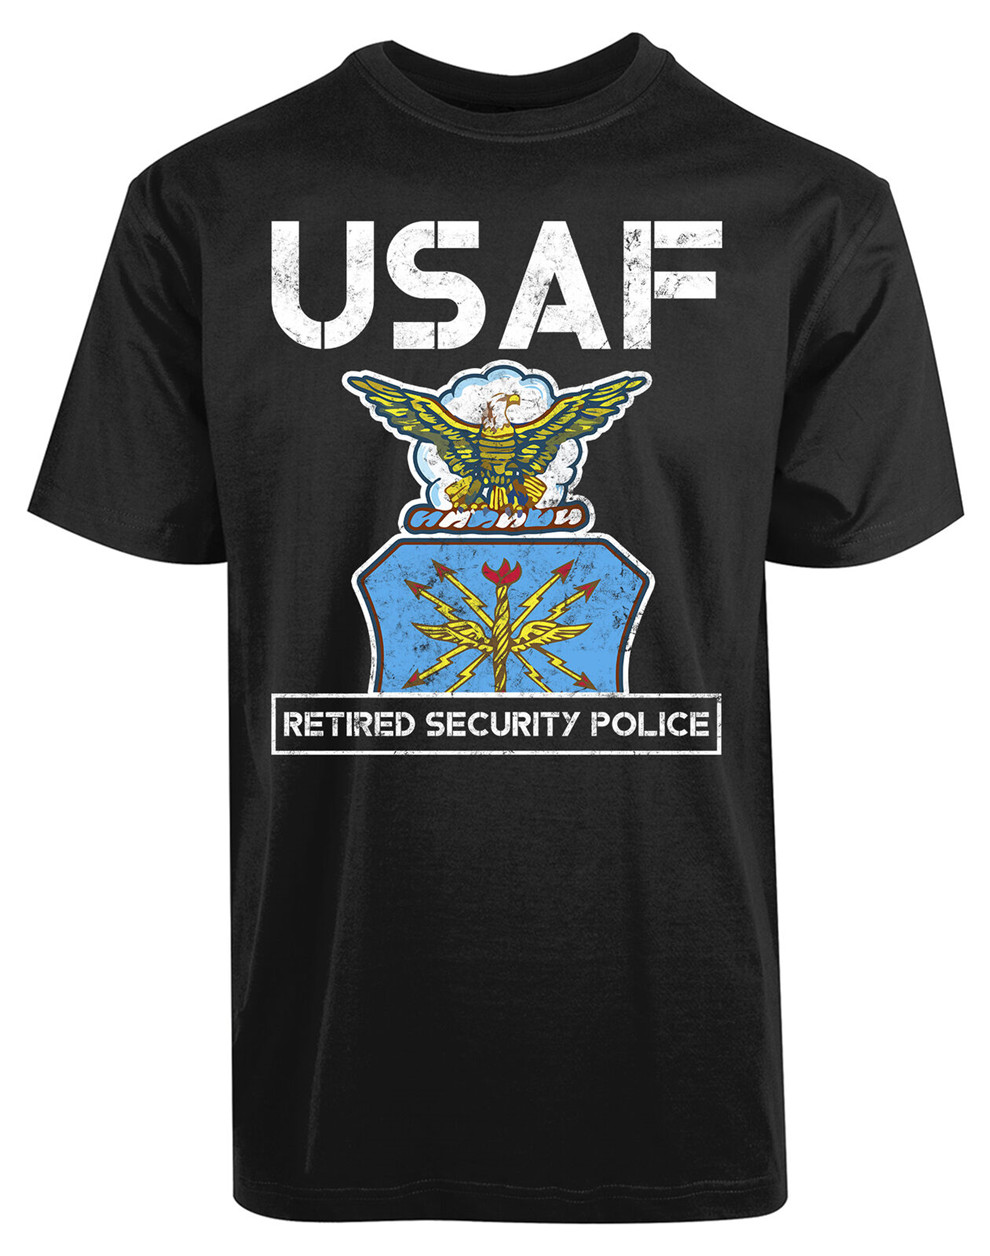 <font><b>Usaf</b></font> Retired Security Police New Men'S <font><b>Shirt</b></font> Hard Worker Respect Officer Top Tee Summer Style Casual Wear Tee <font><b>Shirt</b></font> image